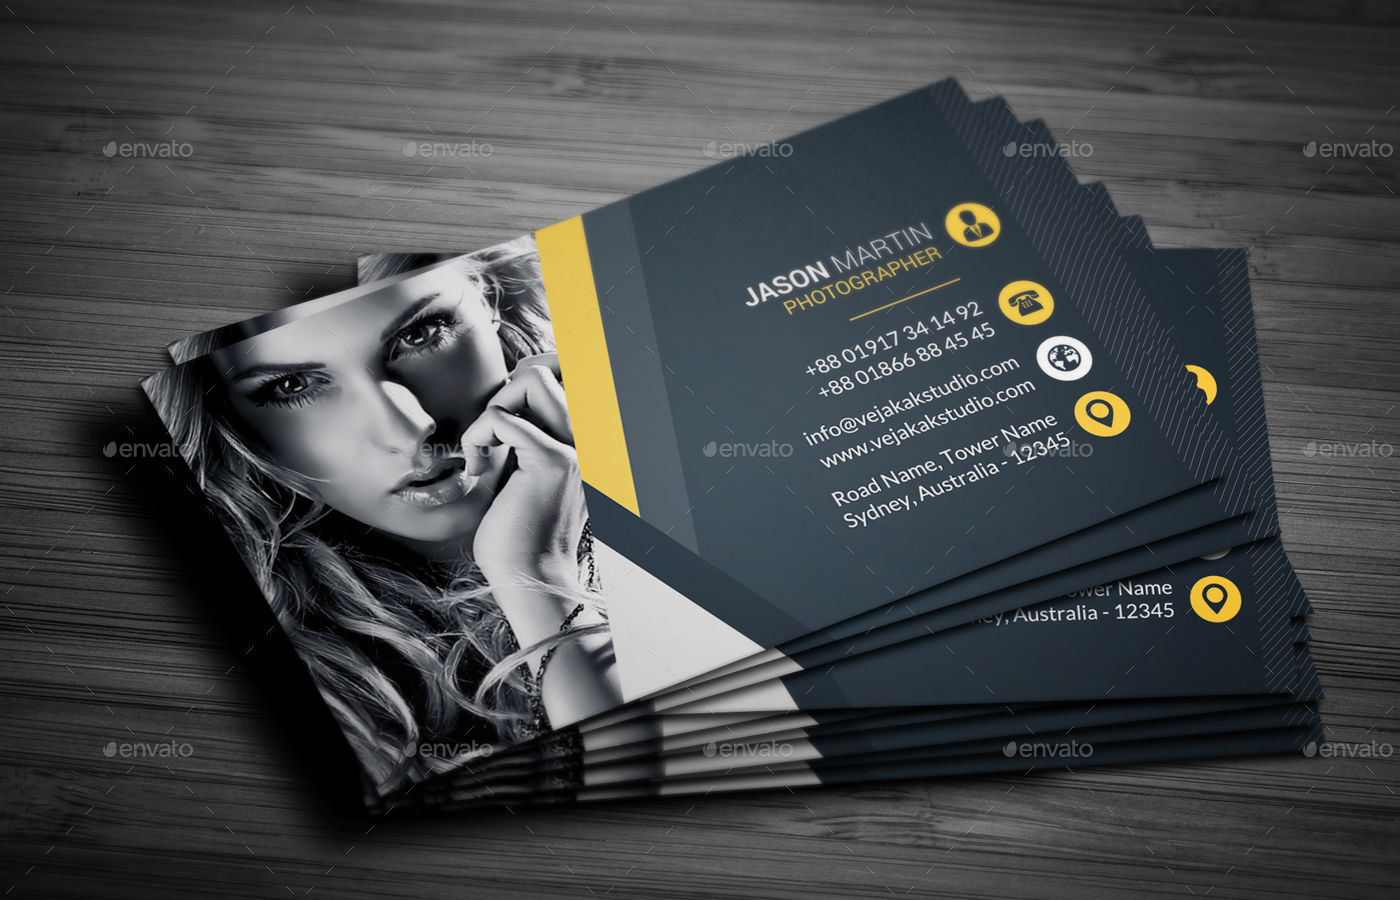 photographer business cards - Tire.driveeasy.co